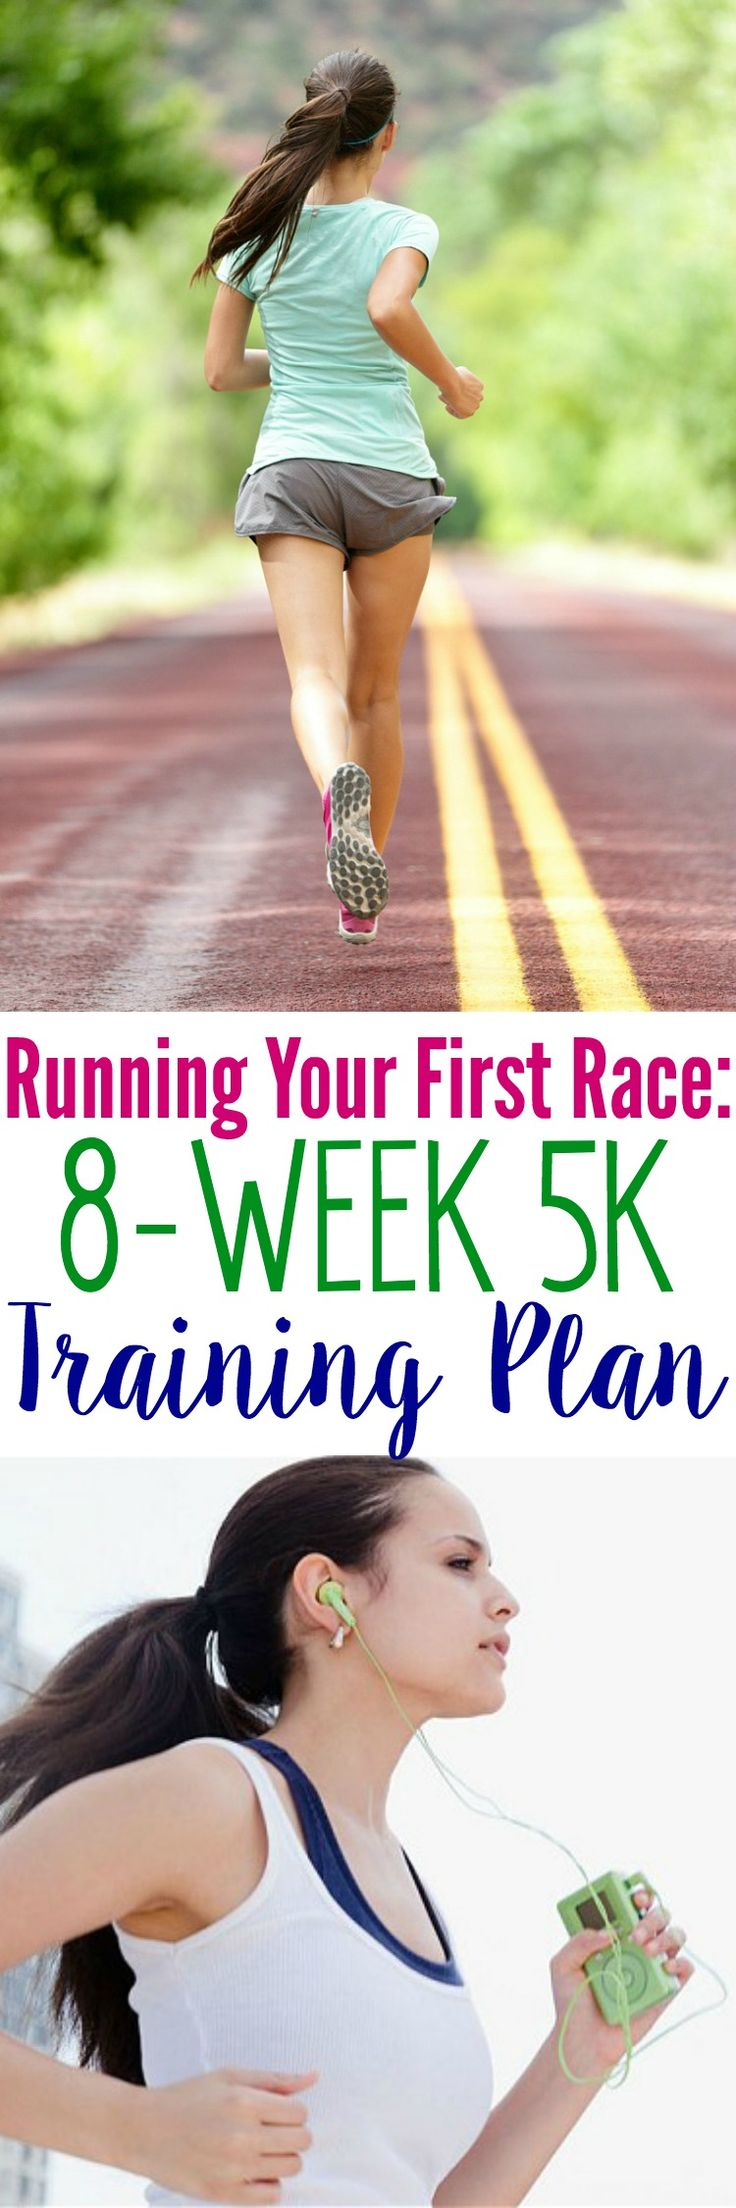 Want to get started running? This 8-Week 5K Training Plan is perfect for beginners and it has everything that you need for Running Your First Race!